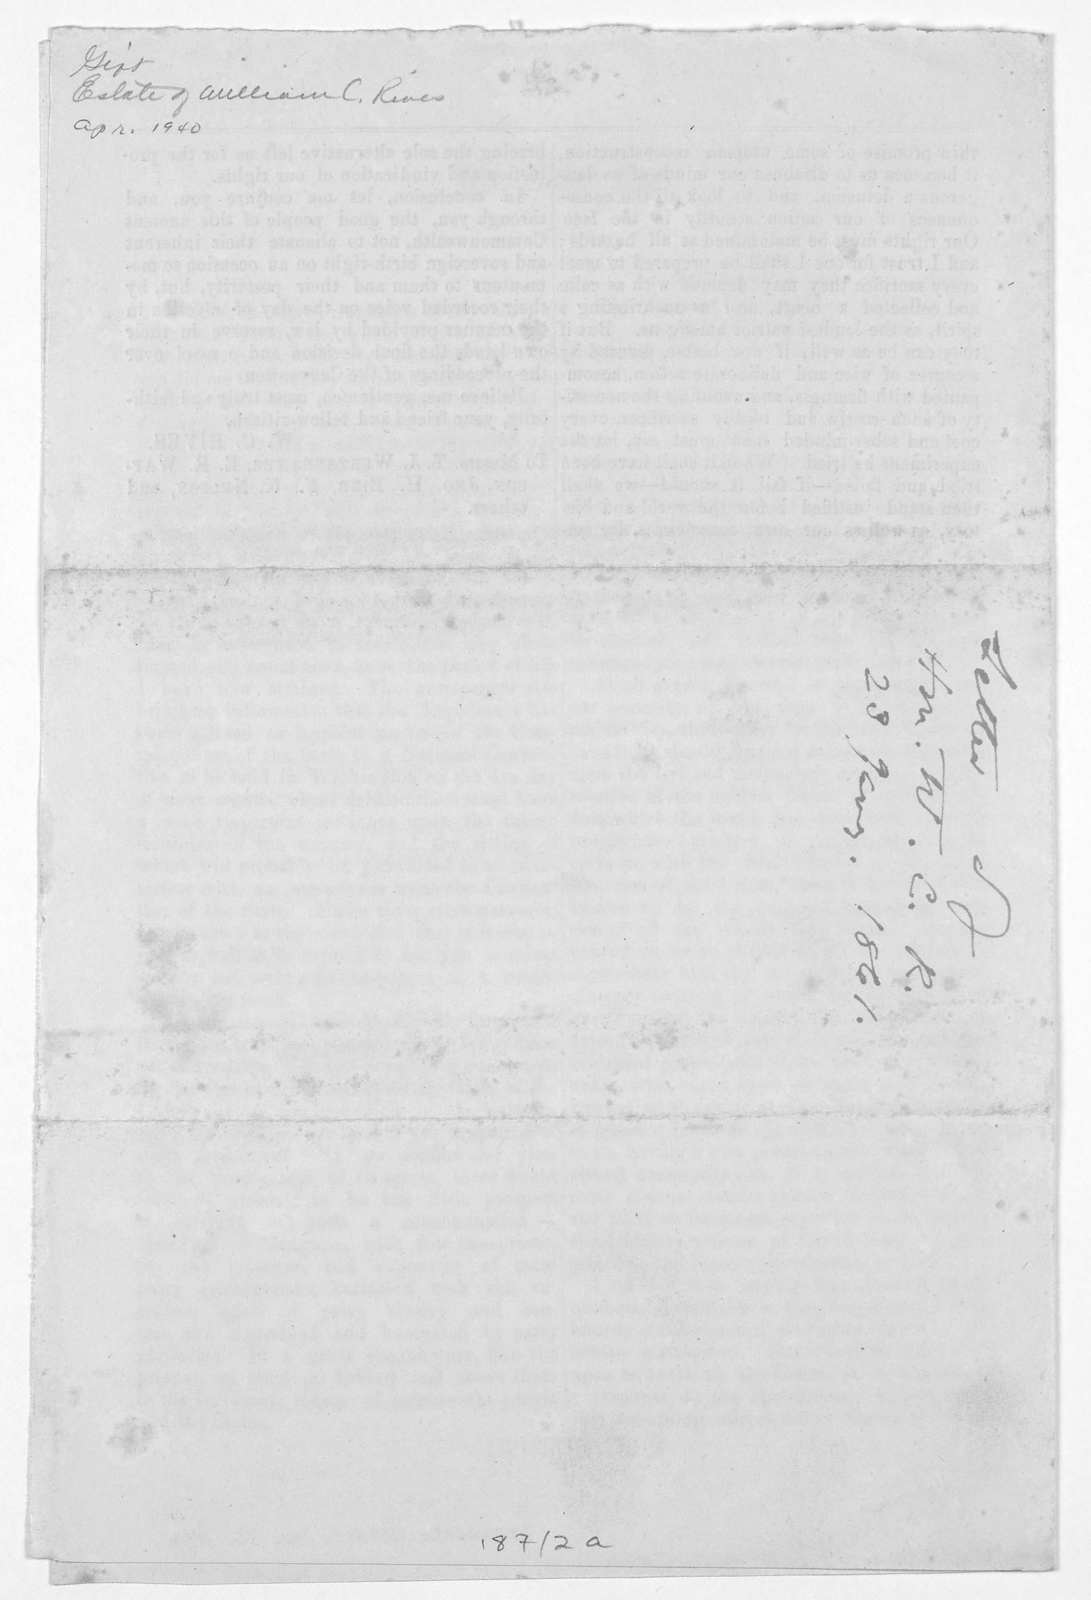 Correspondence. Albermarle County, Jan. 12, 1861. Wm. C. Rives and V. W. Southall, Esq's: Gentlemen- Taking it for granted that the bill for the call of a convention ... will speedily become a law, we feel the necessity of selecting without dela